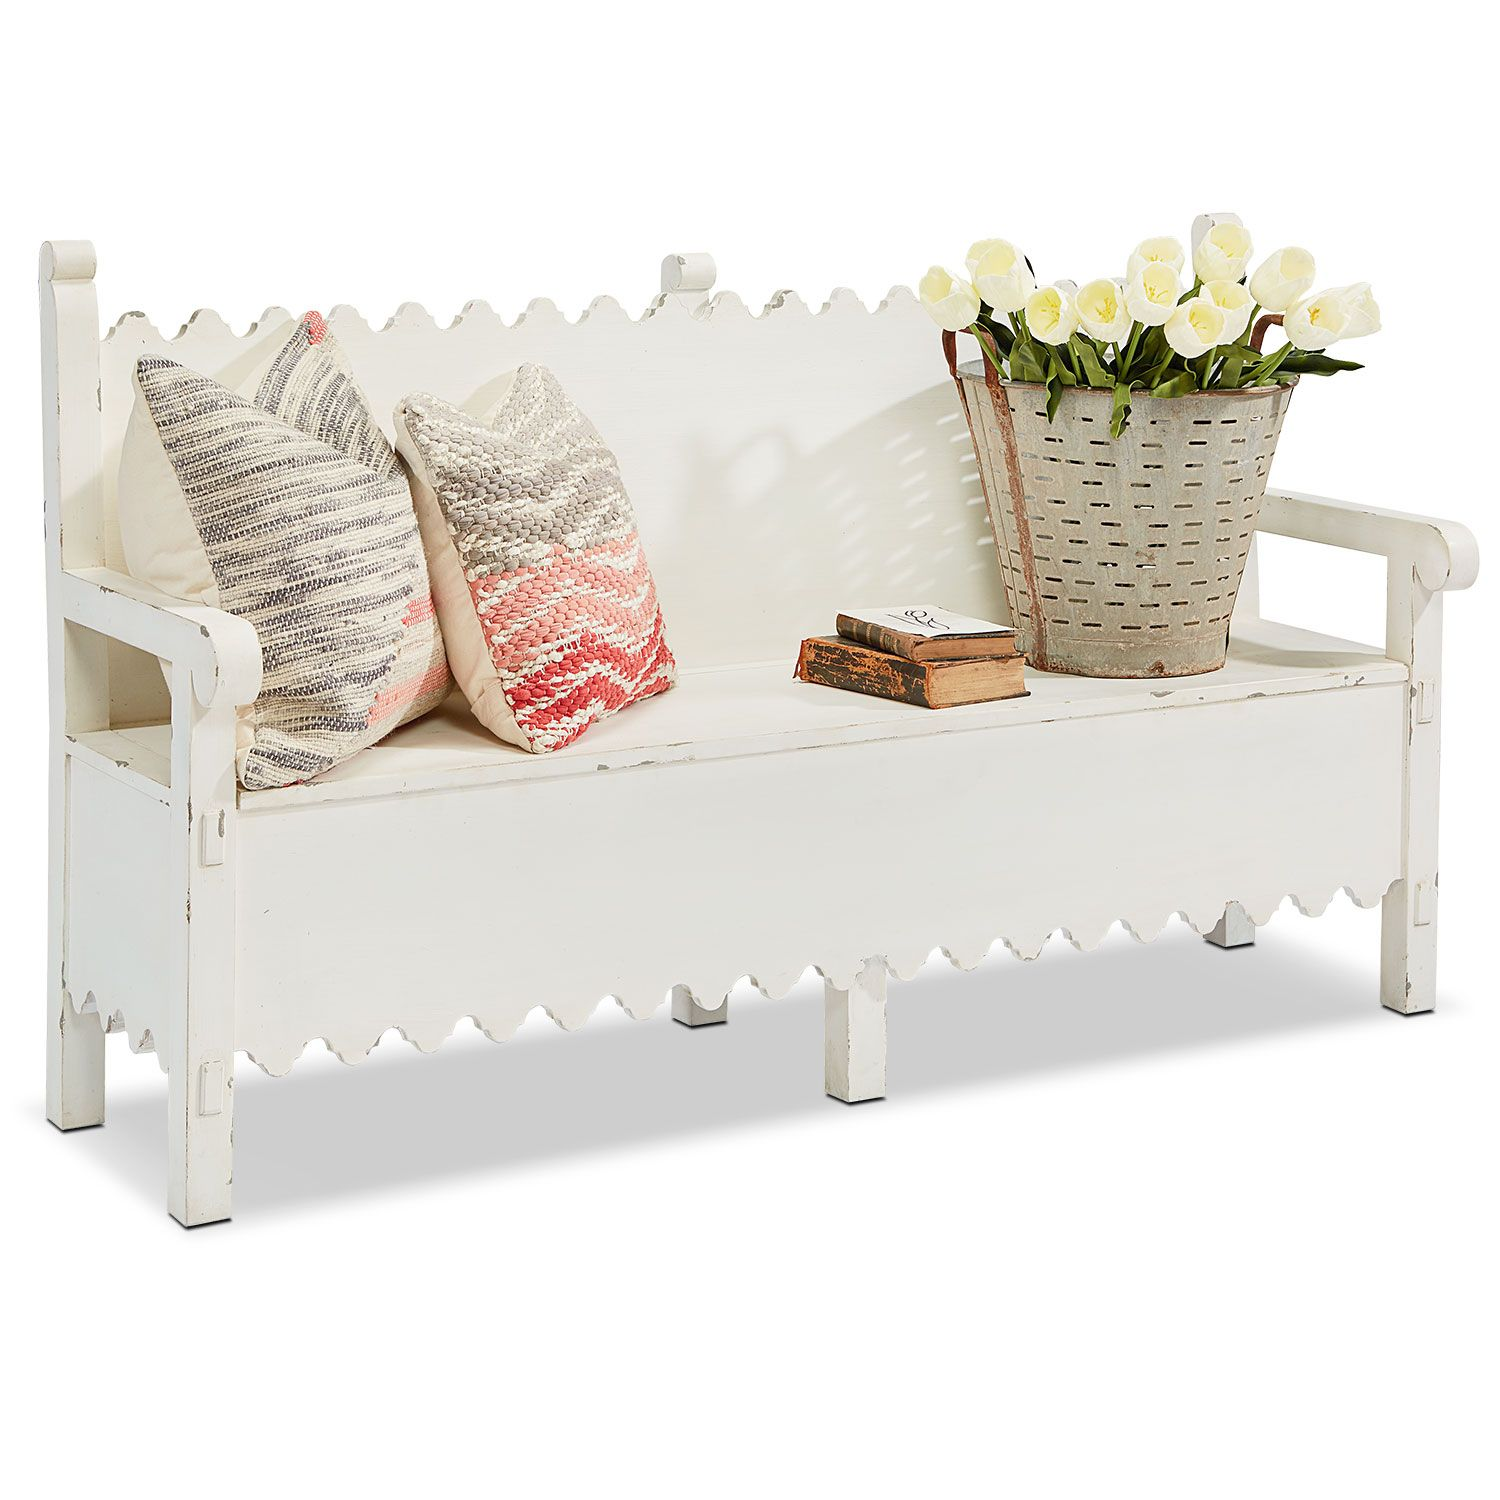 End of hallway storage  Vintage cottage features give our Scalloped Bench a charming style